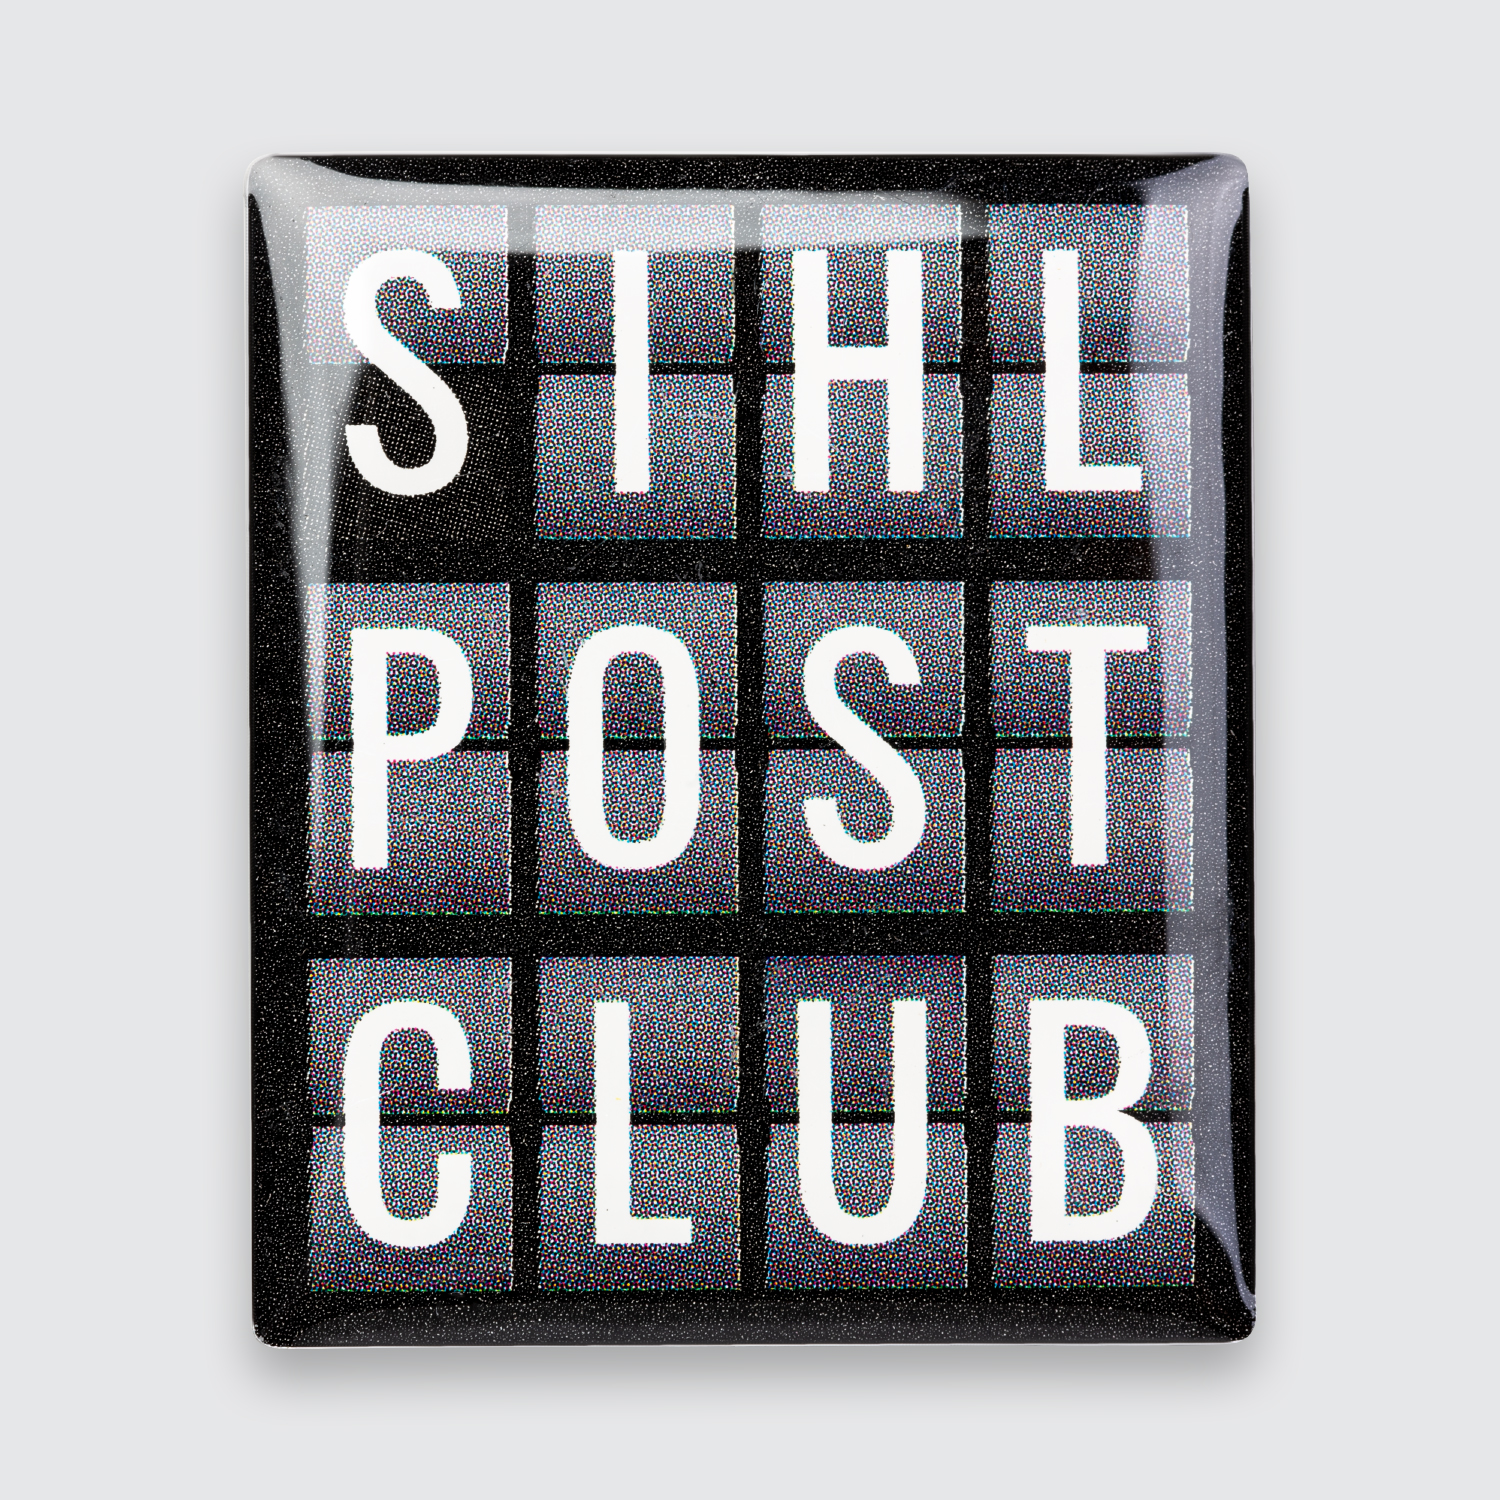 aluminium jeton sihl post club